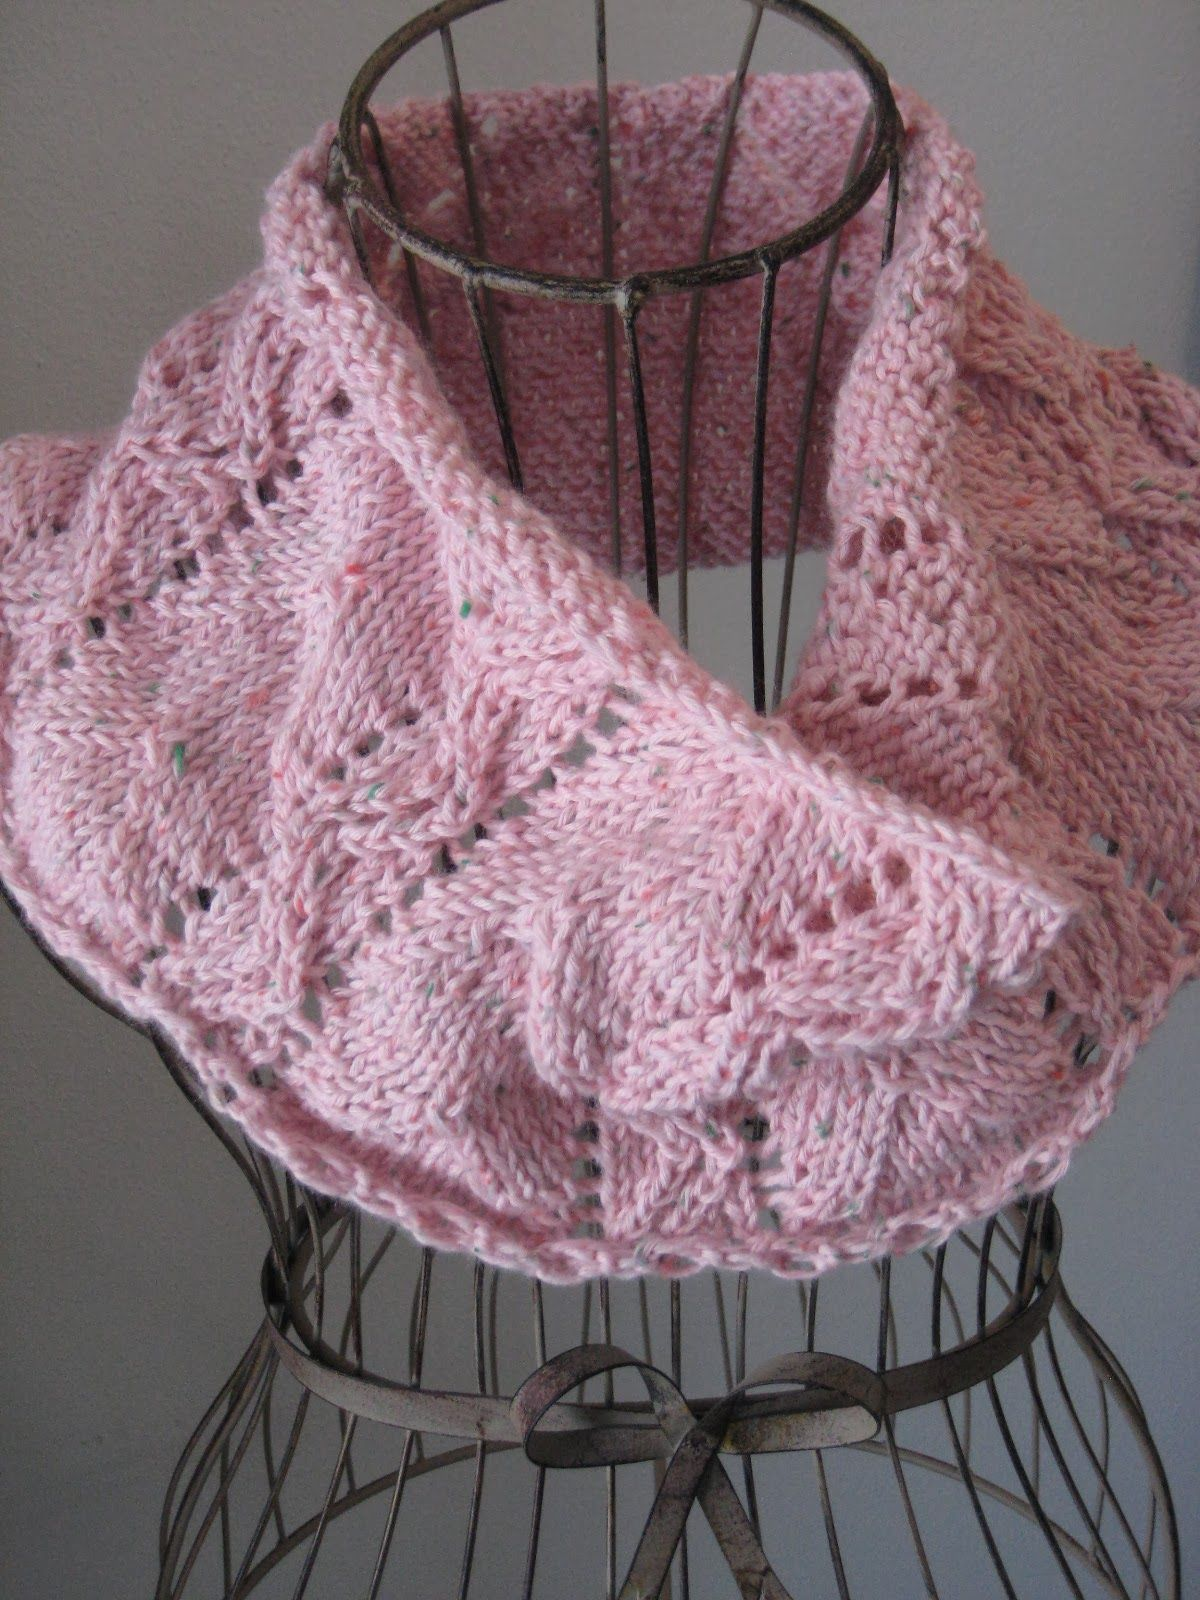 Spring Lace Cowl | Knitting patterns, Patterns and Knit cowl